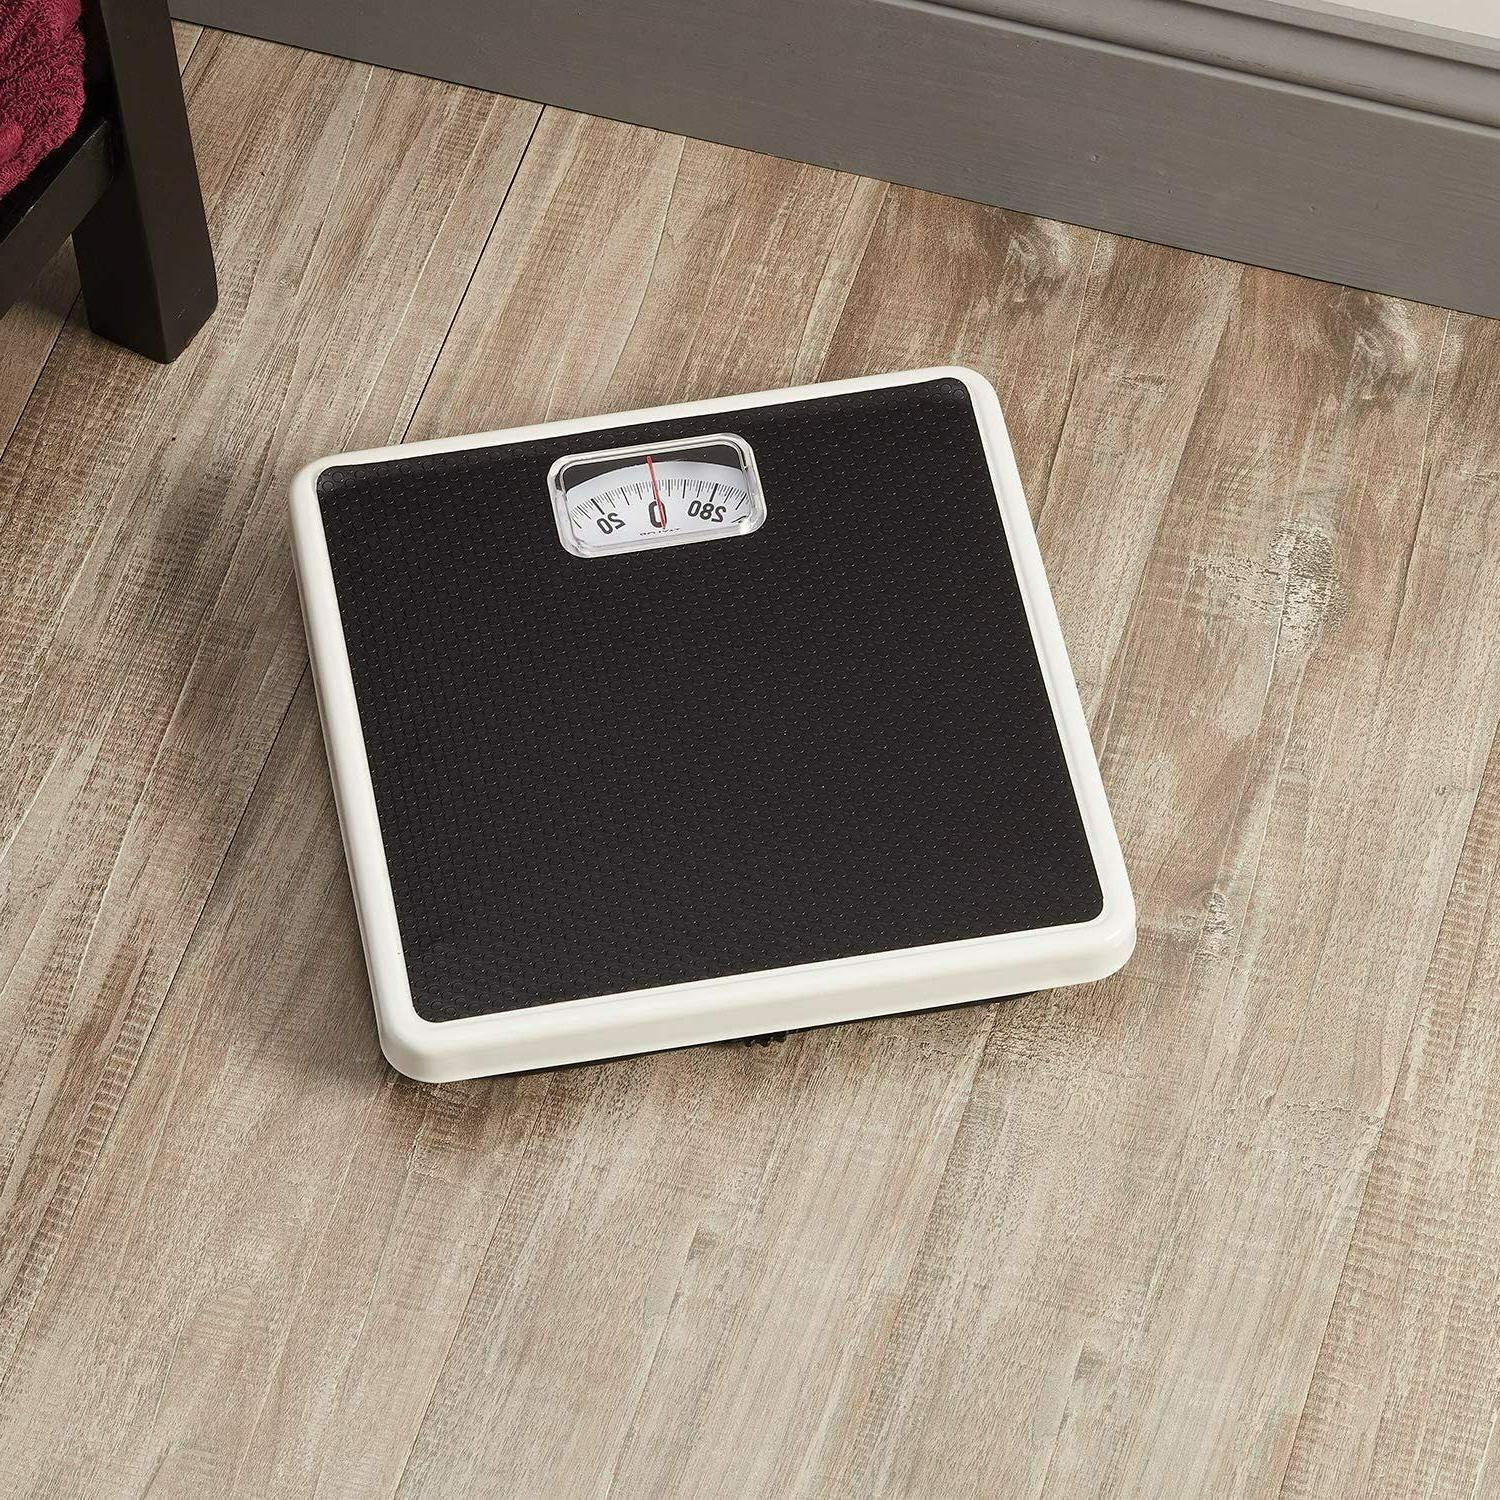 Bathroom Weight Scale Analog Scale Rotating